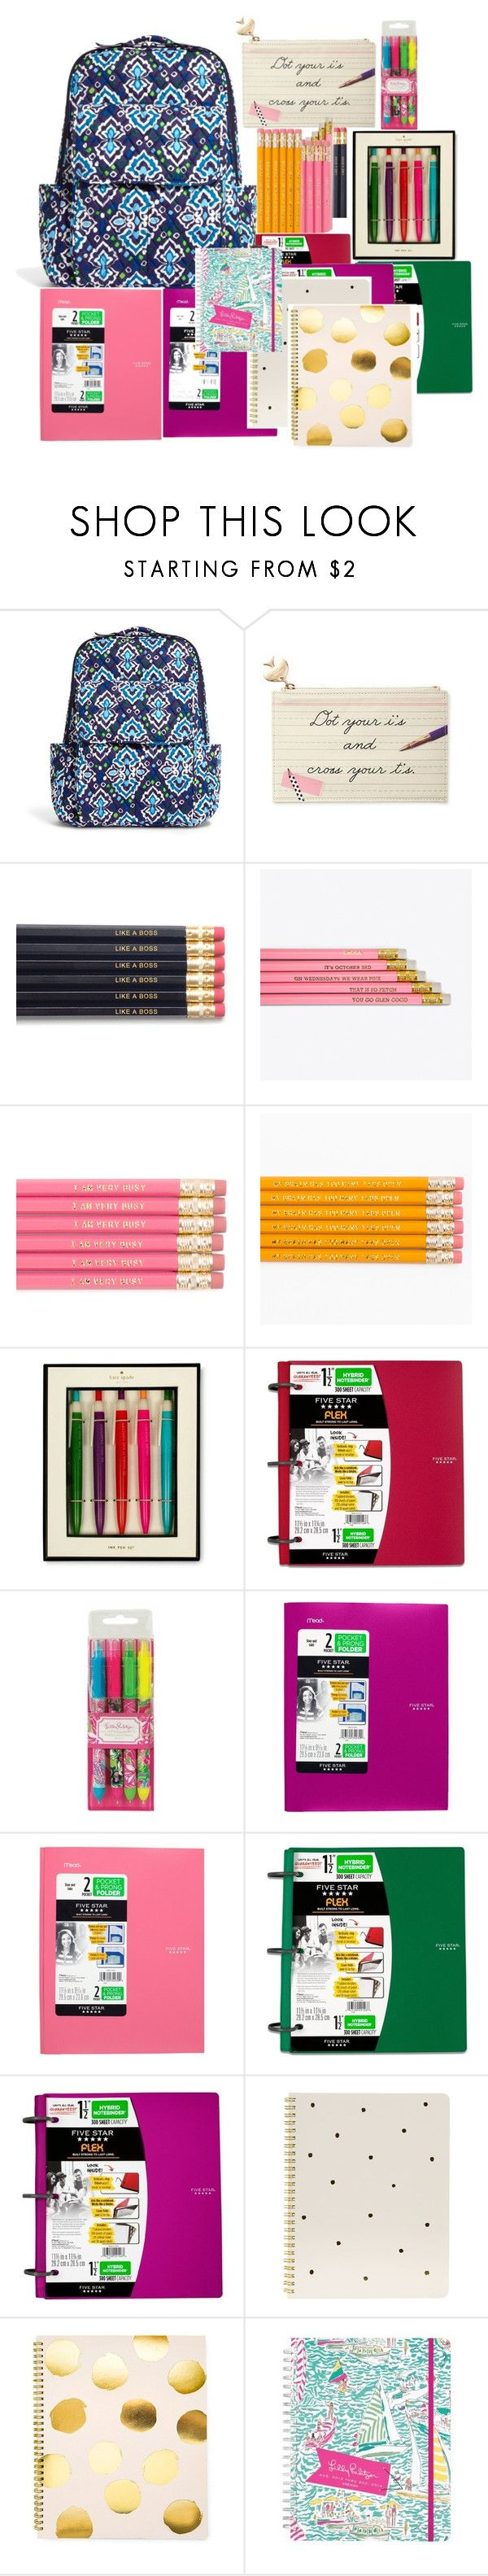 """School Supplies 2017"" by nailsforashleywest on Polyvore featuring Vera Bradley, Kate Spade, Lilly Pulitzer, Sugar Paper, women's clothing, women's fashion, women, female, woman and misses"